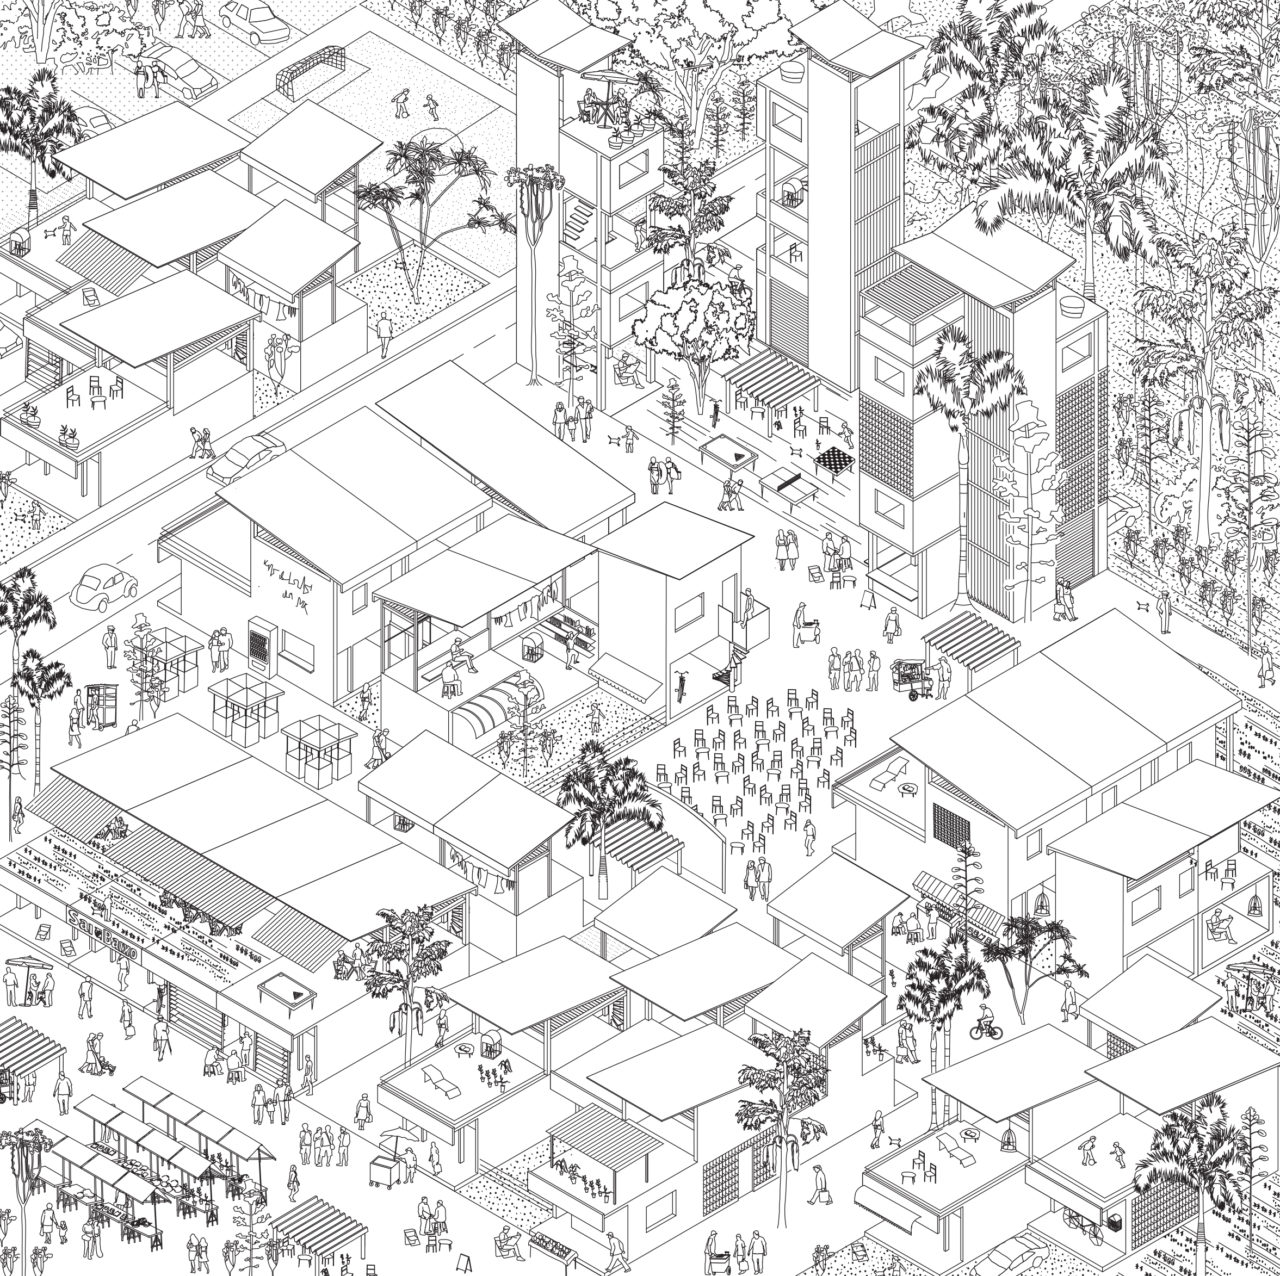 NL21: Innovating Mass Housing in Brazil